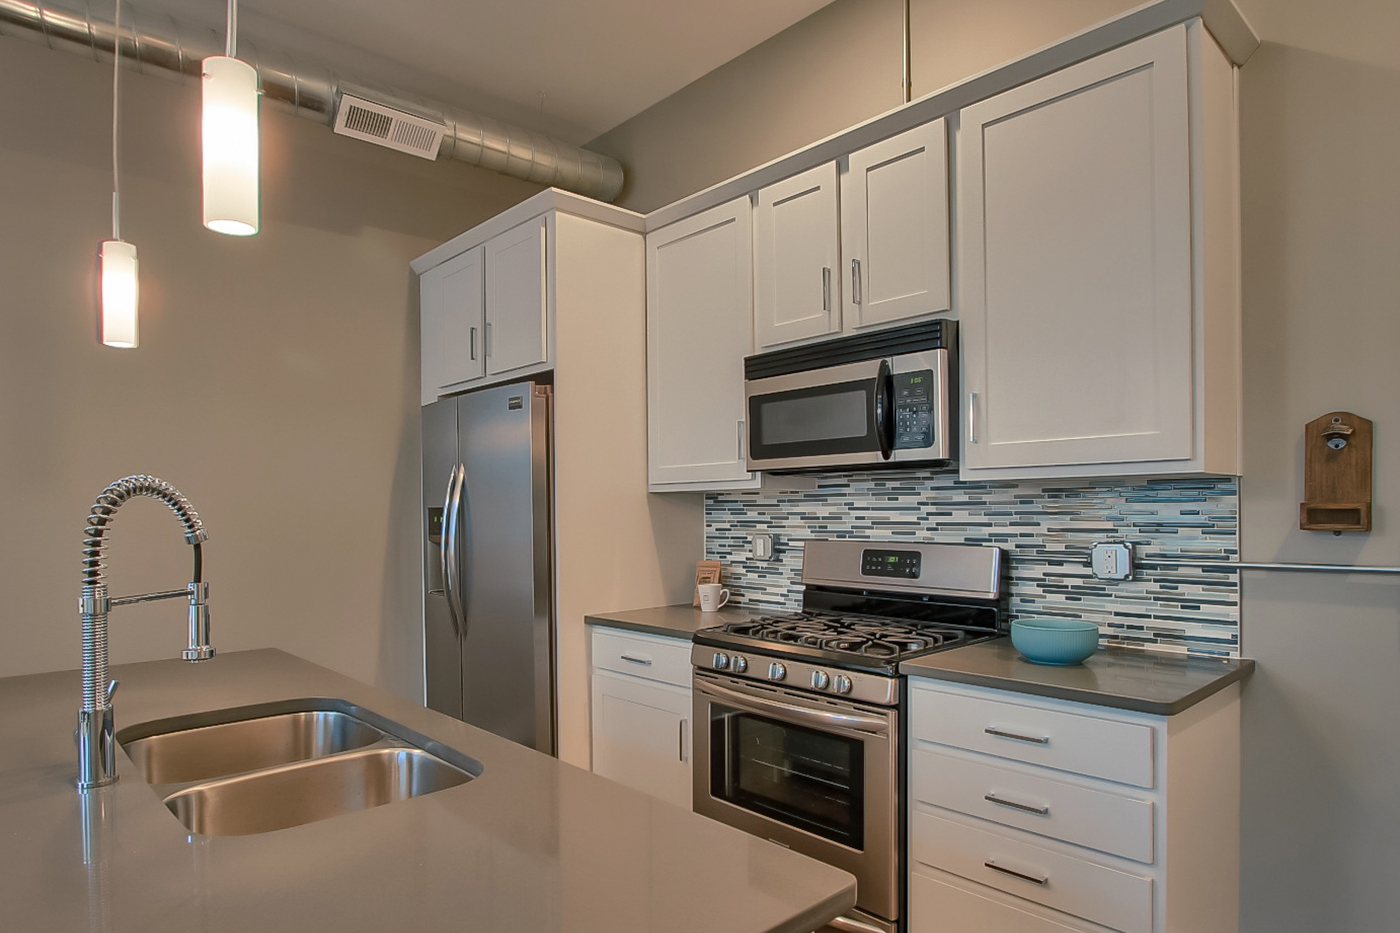 Close to home - Conveniently located within walking distance to everything in Downtown Harrisburg, including: Riverfront Park, City Island, and many great restaurants and bars.